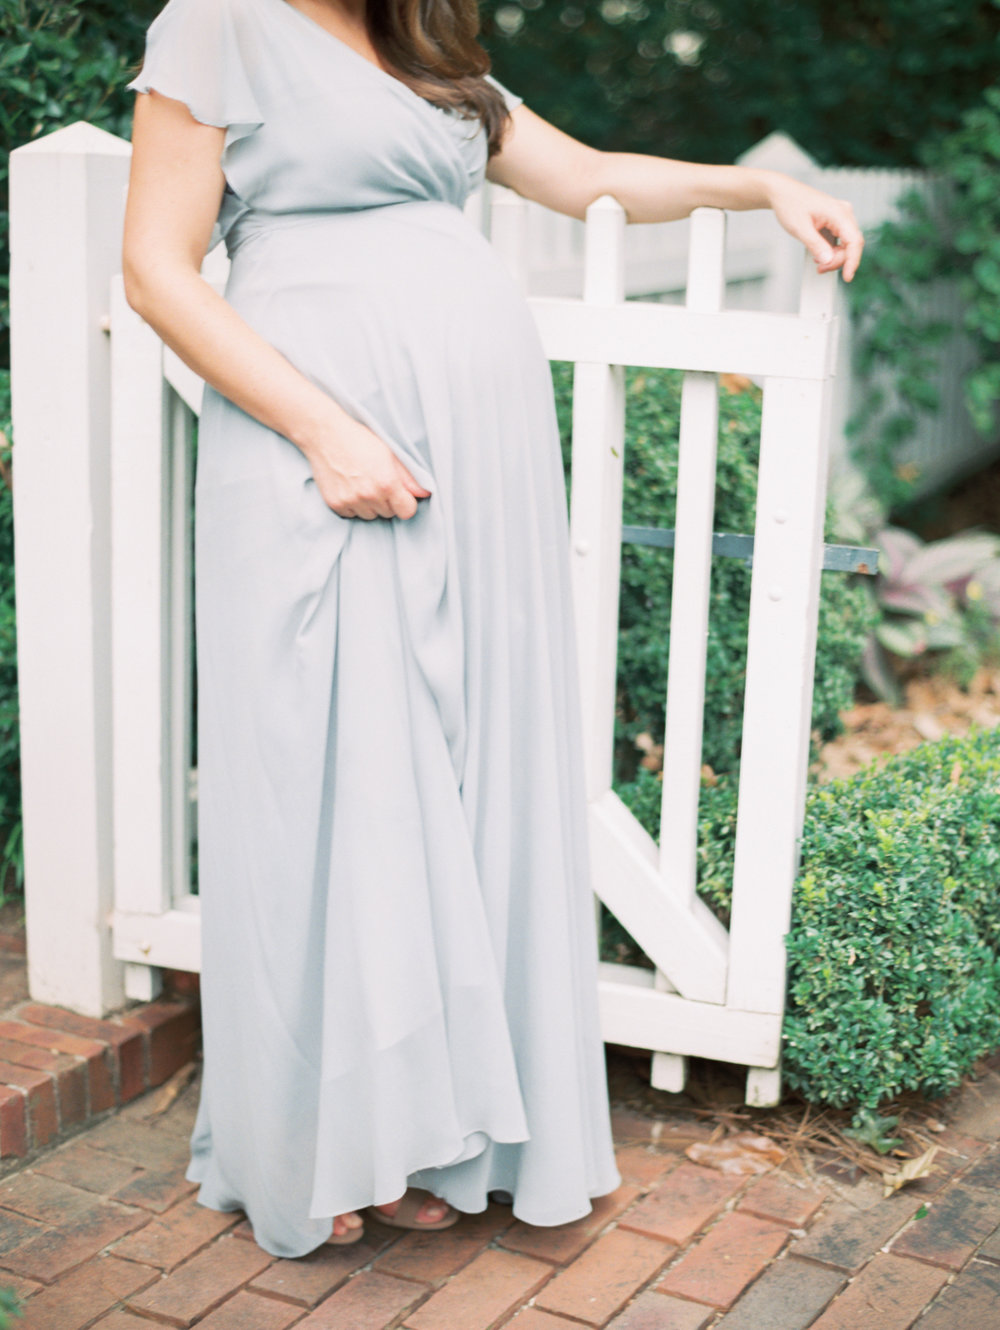 shackleford maternity four corners photography athens maternity photographer anna shackleford photography atlanta film photographer maternity photography-20.jpg